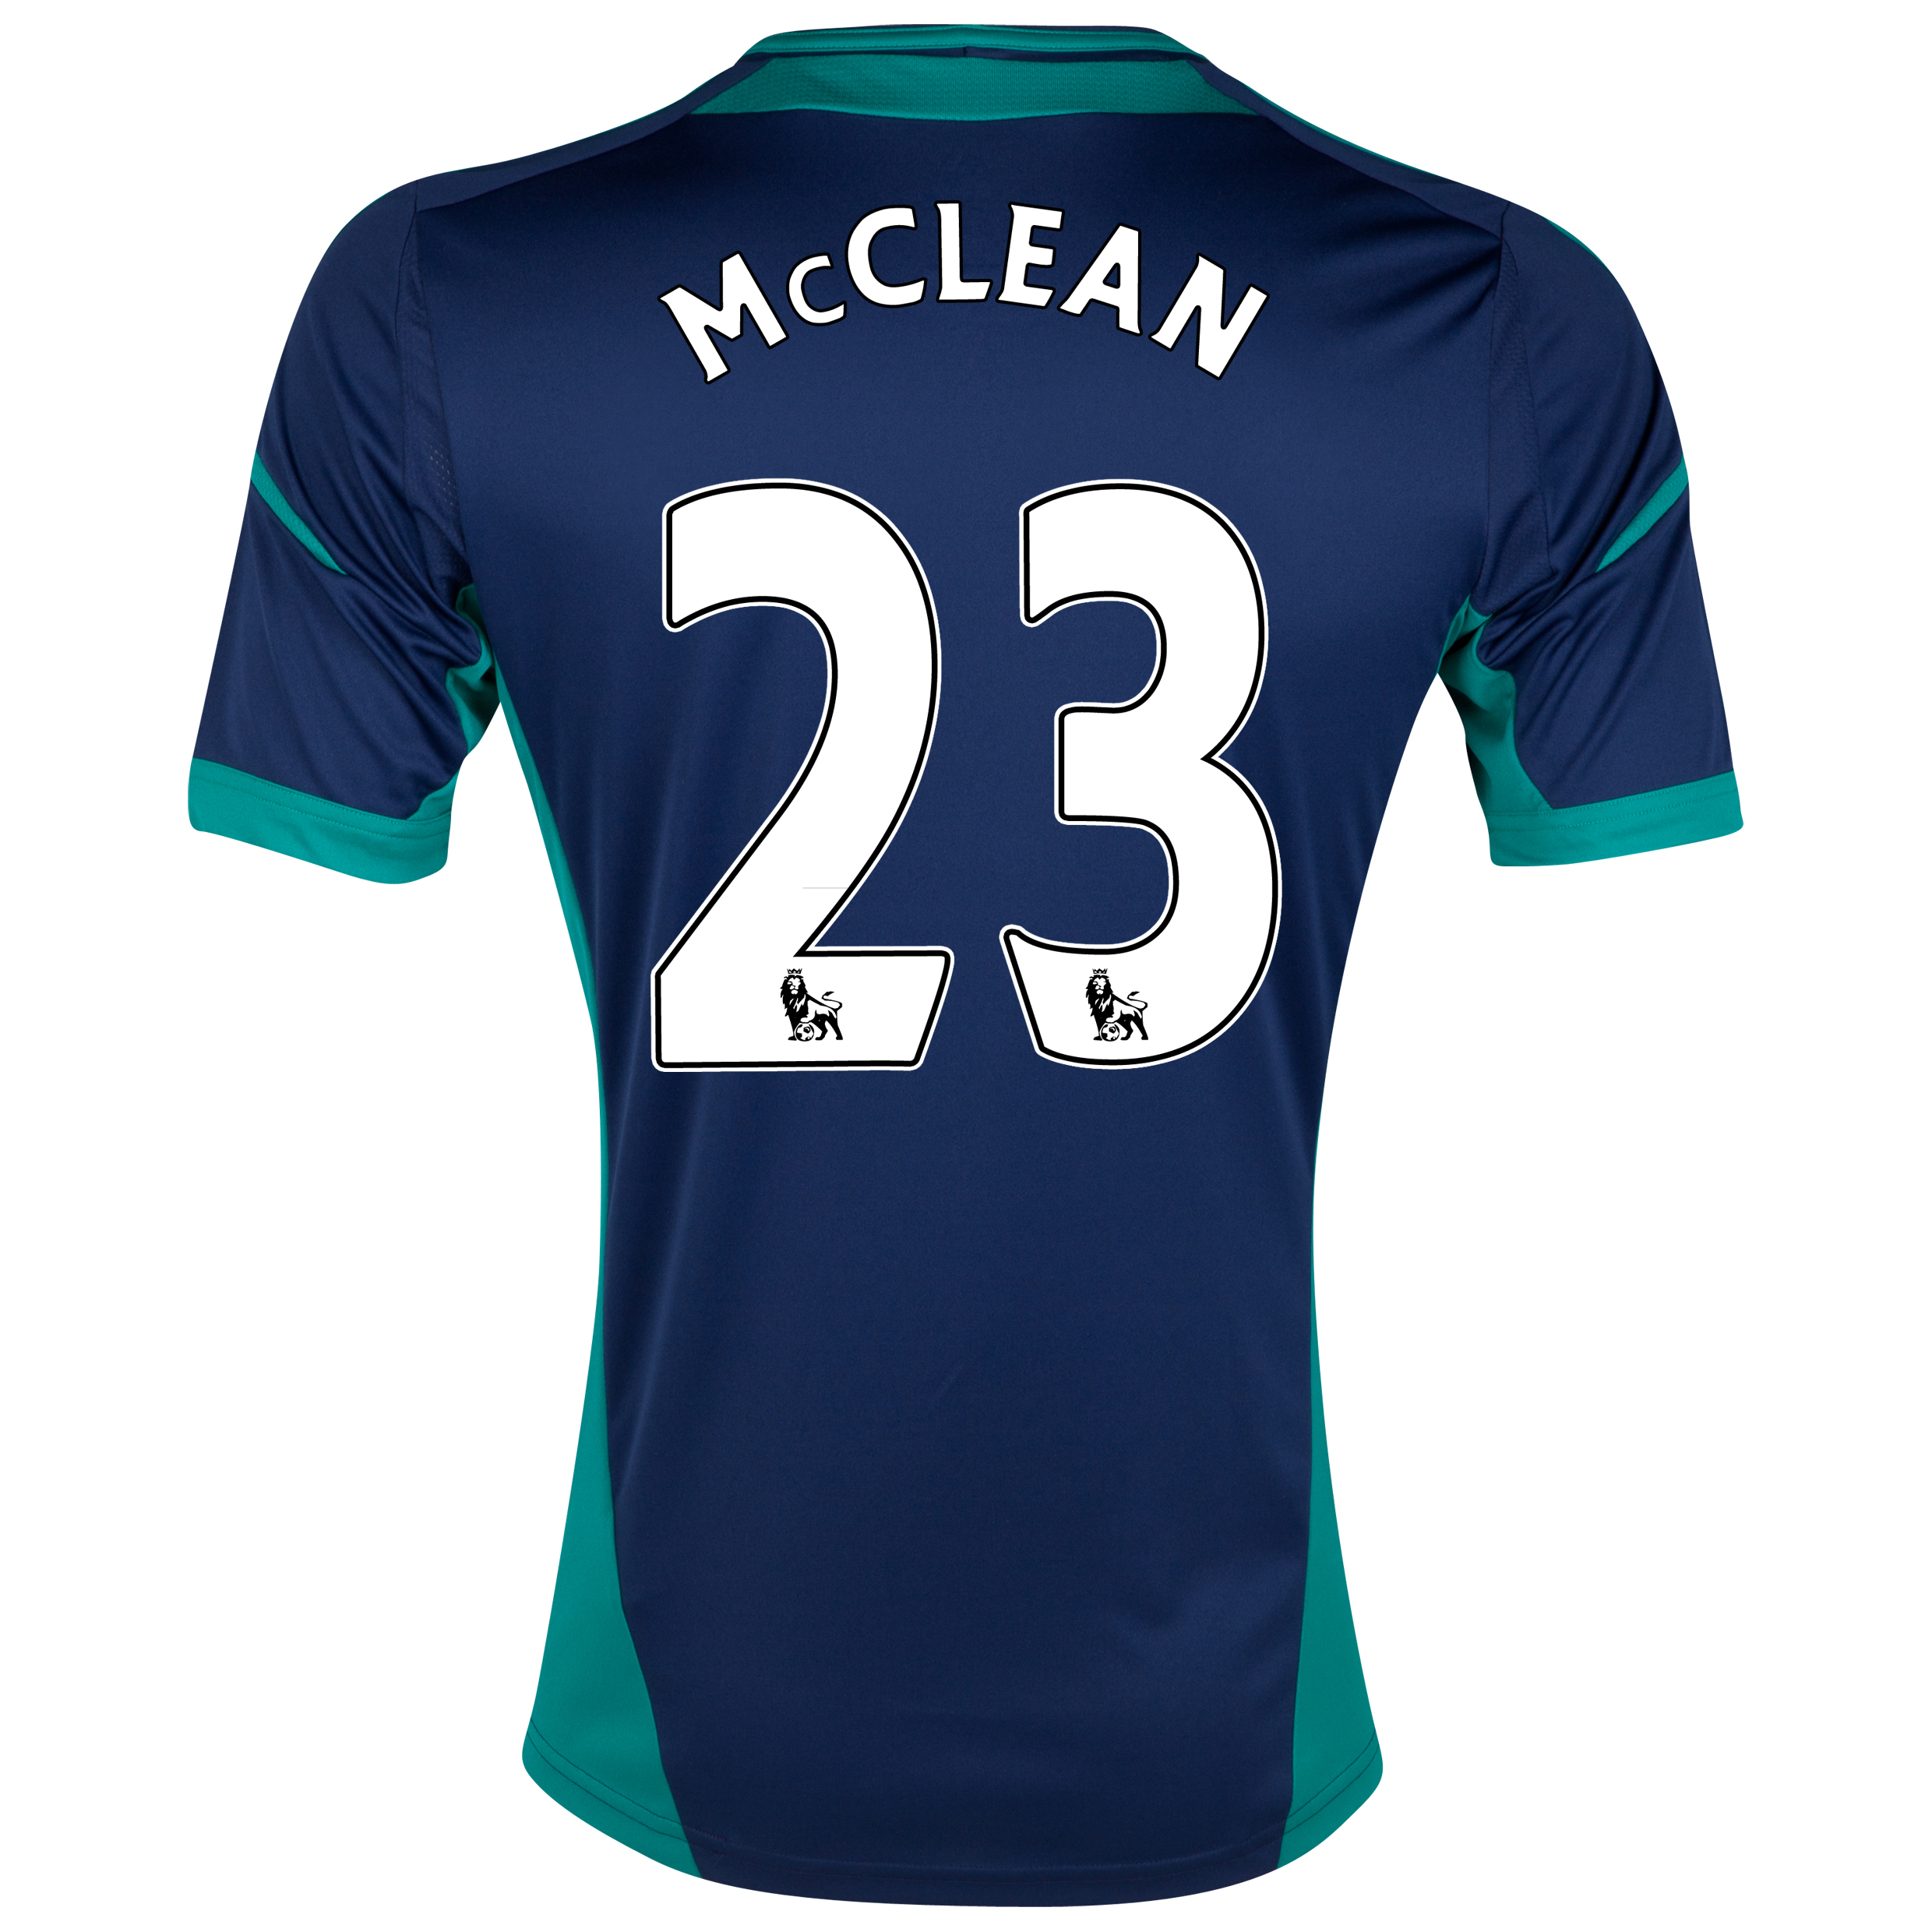 Sunderland Away Shirt 2012/13 - Junior with McClean 23 printing